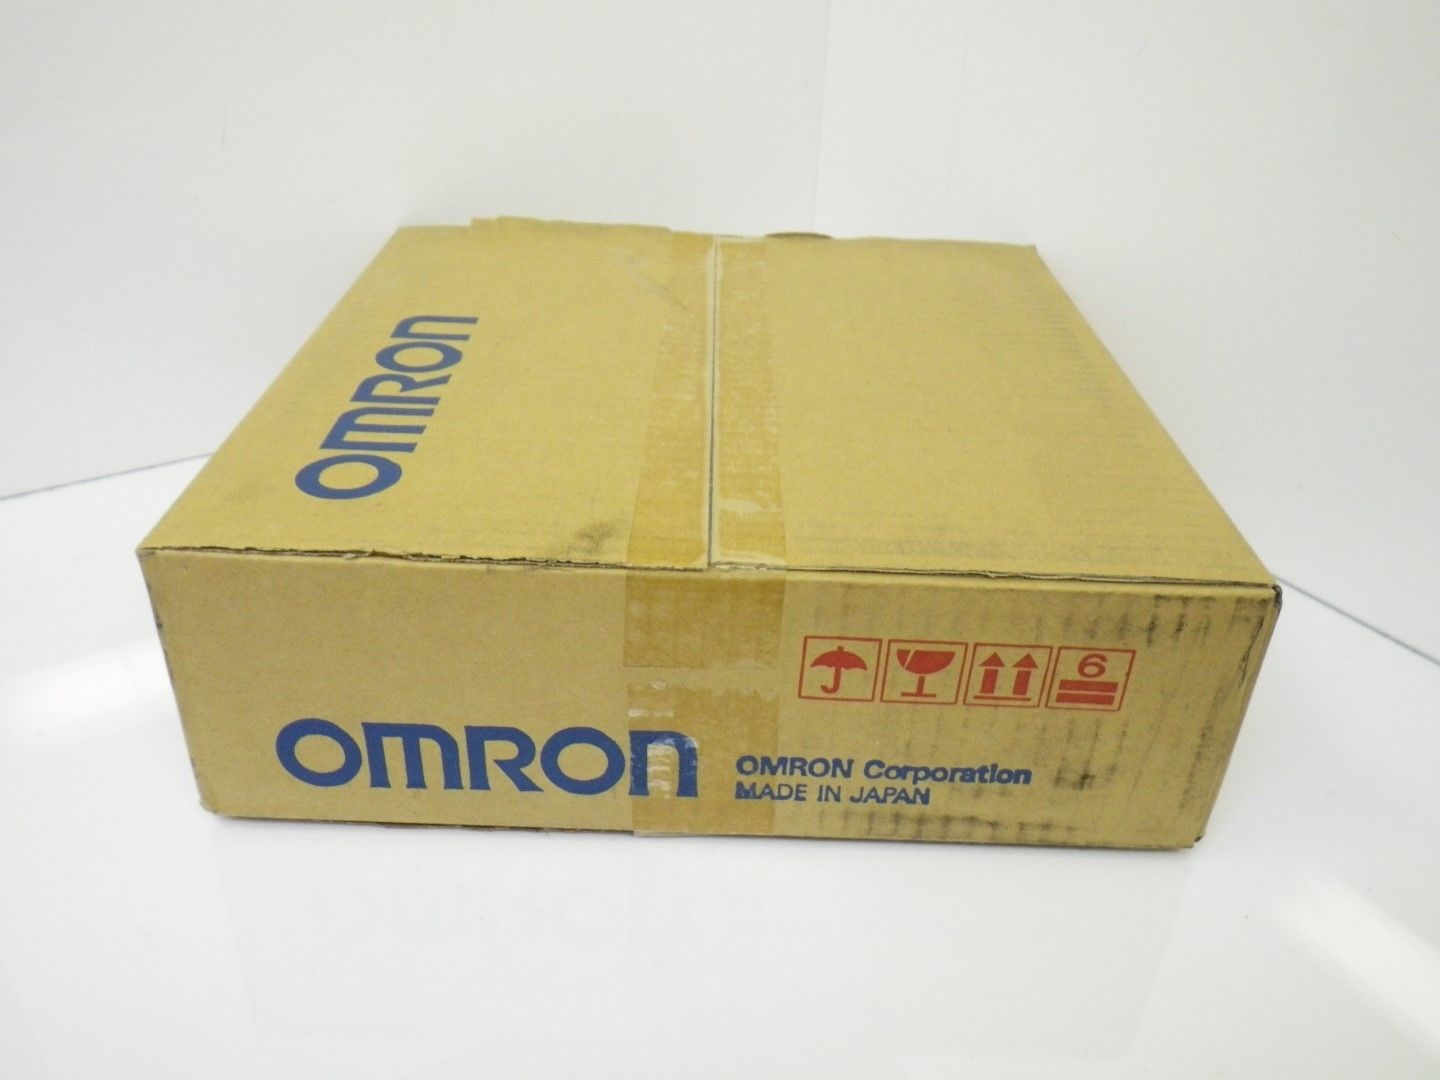 omron camera cable 10meter 10 meter fz vs fzvs fzvs10m new in box vision. Black Bedroom Furniture Sets. Home Design Ideas